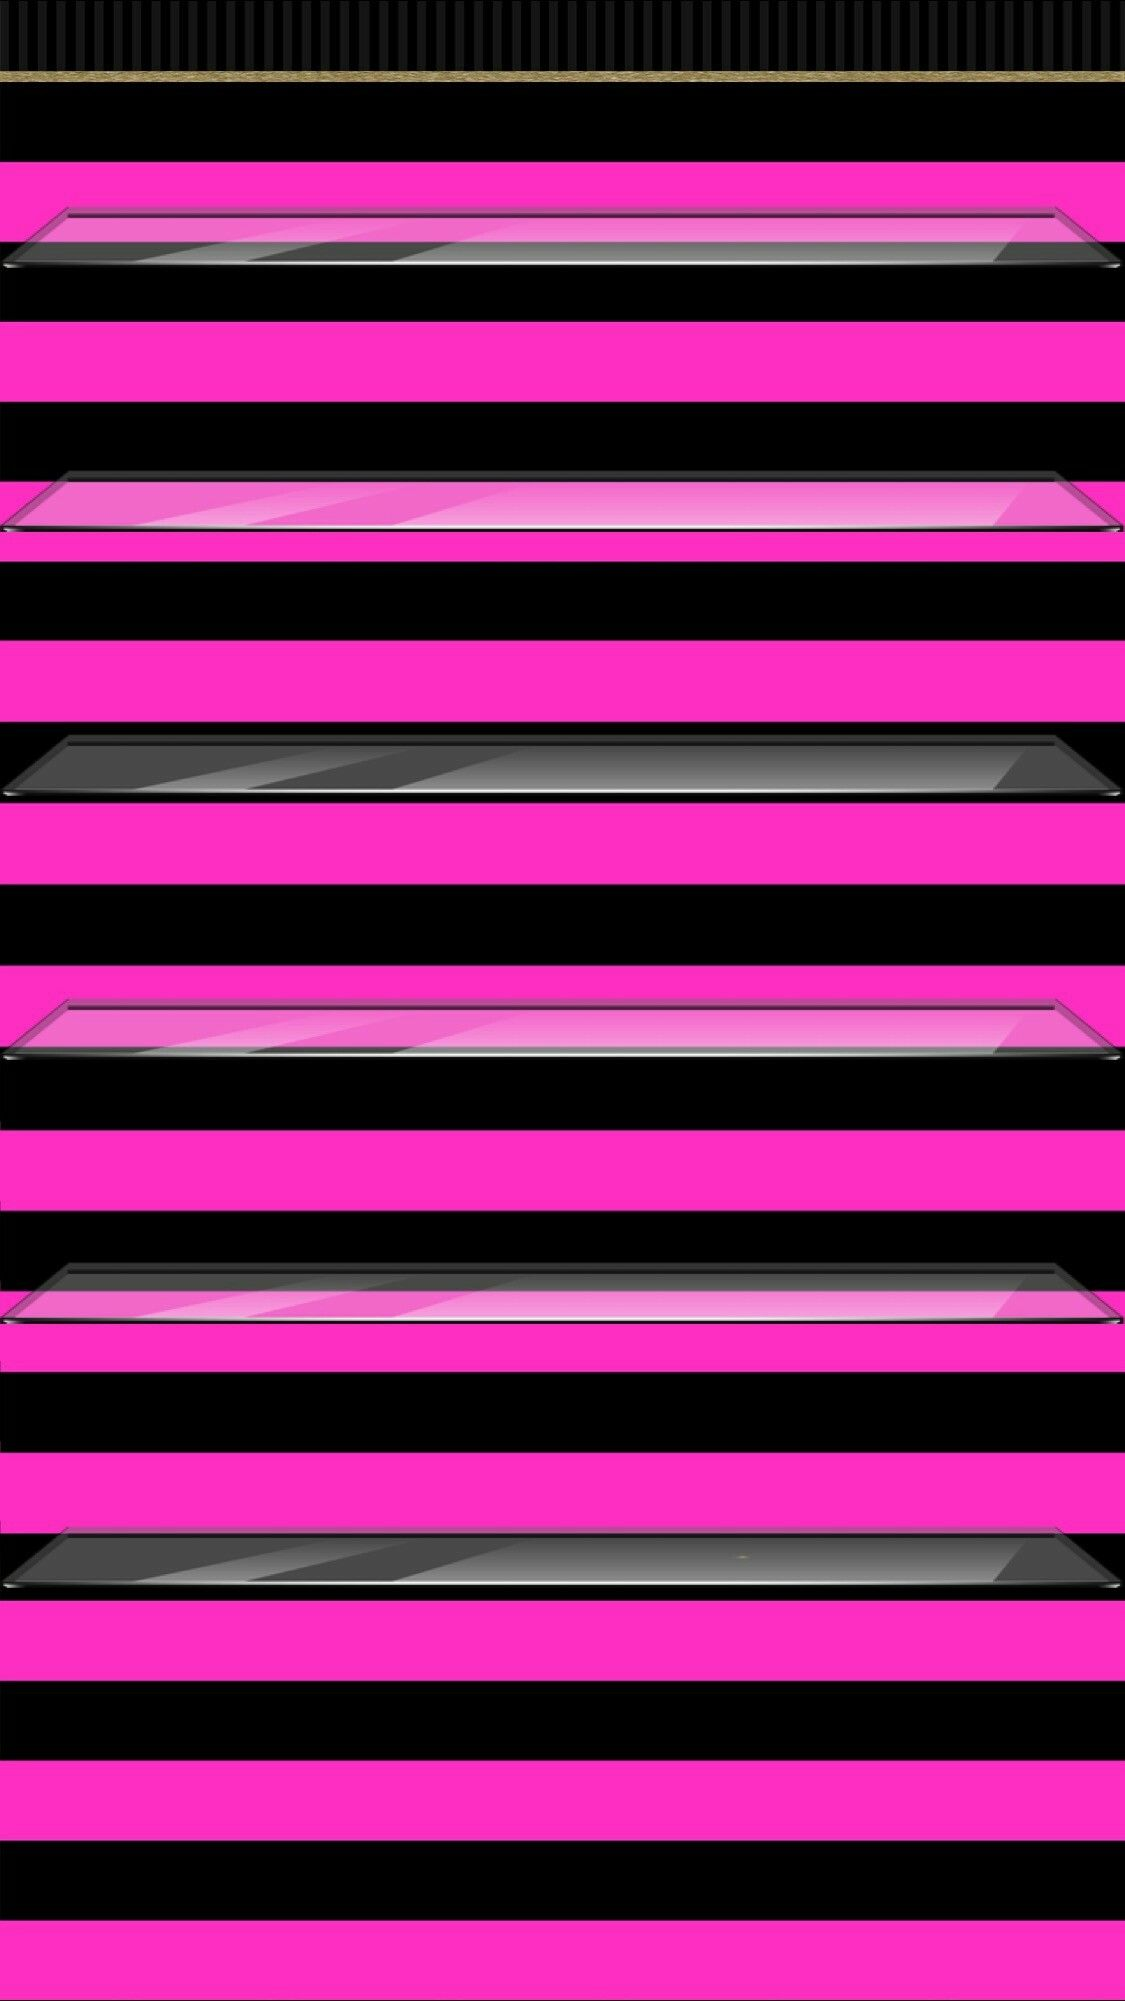 Pin By Tina Liroff On Pink Wallpapers Iphone 6 Plus Wallpaper Iphone 6 Wallpaper Chevron Phone Wallpapers